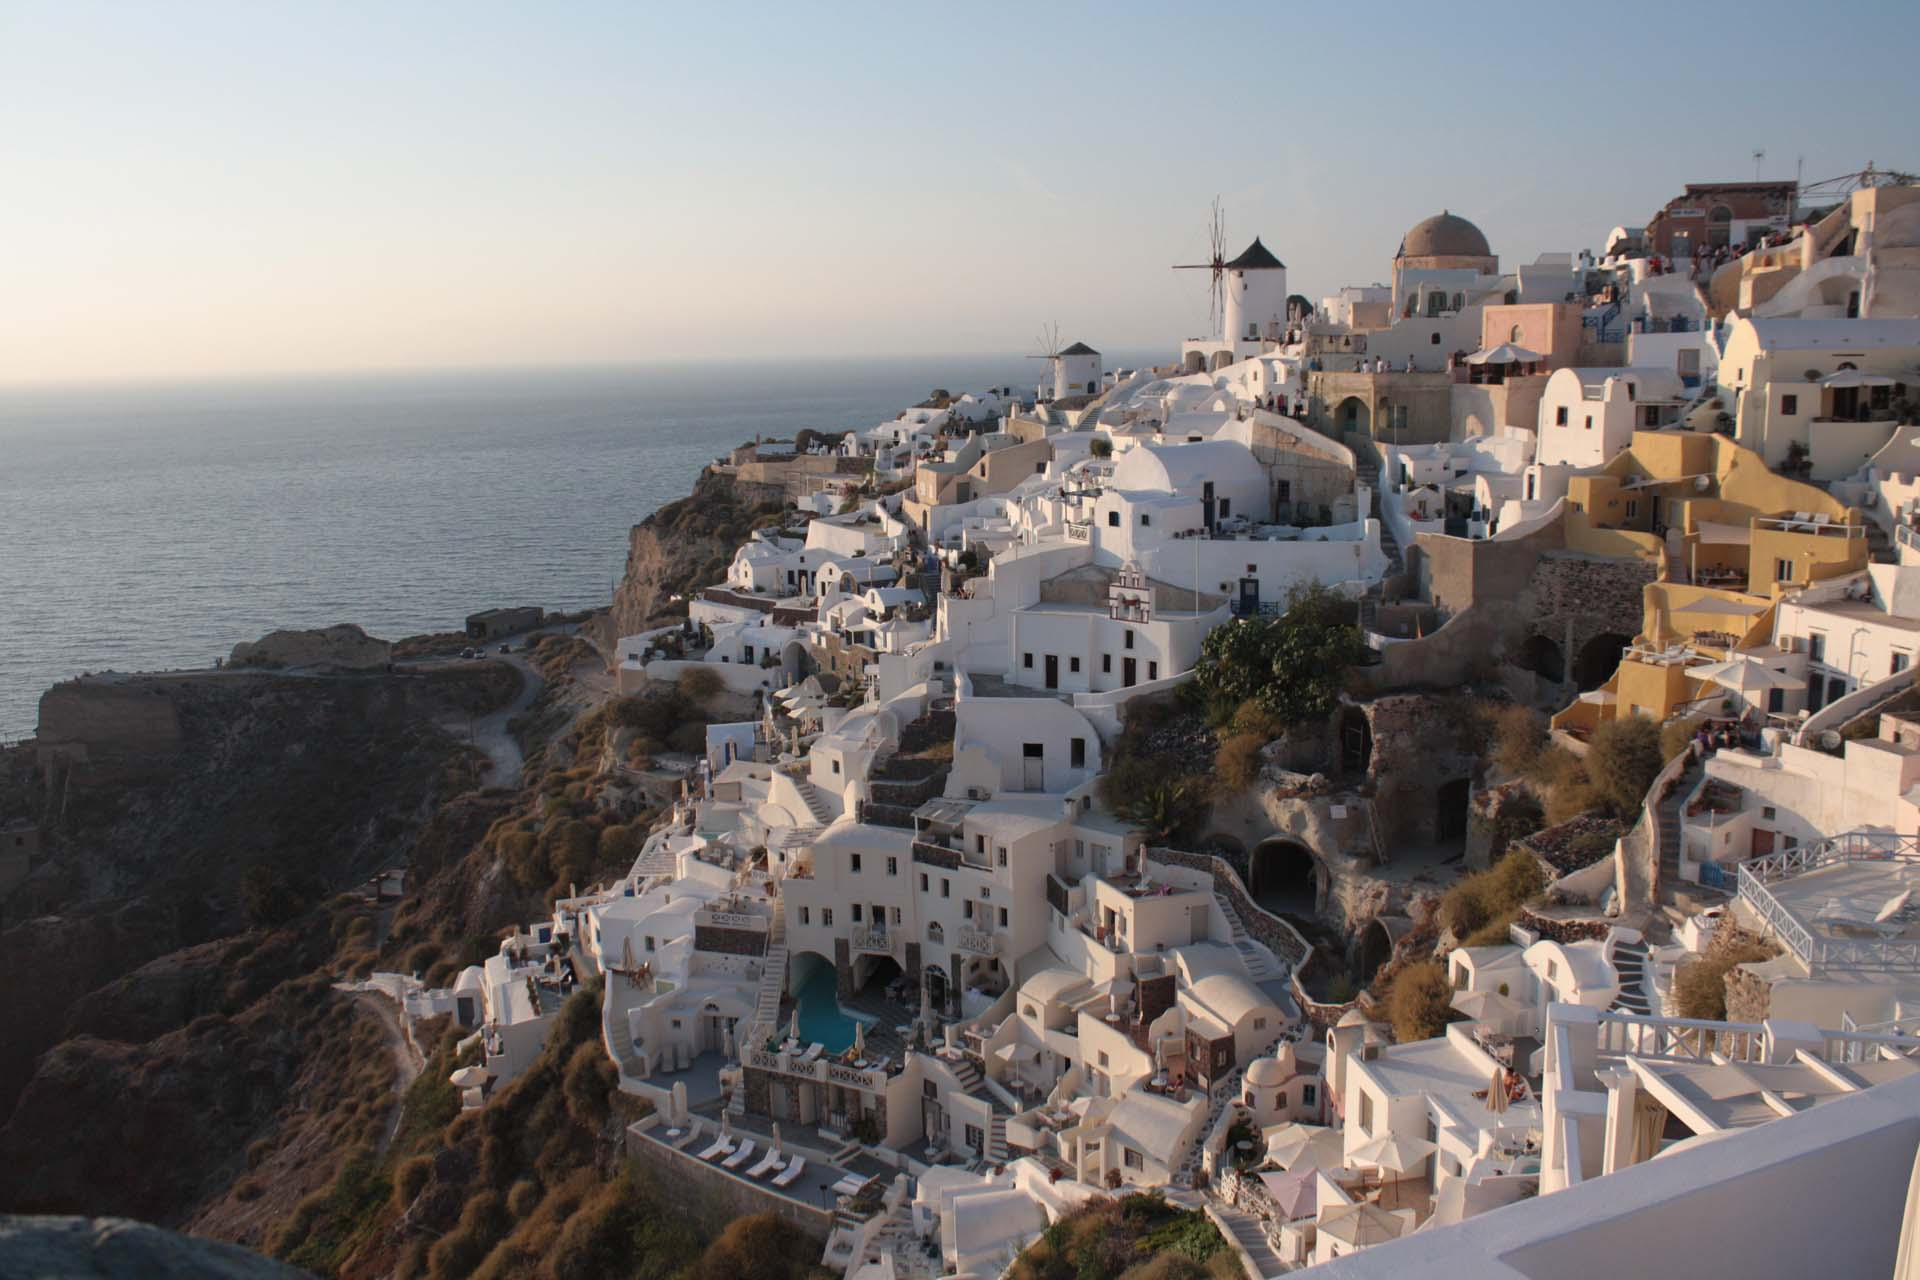 Sunset reflecting on the city of Oia in Santorini white houses mills